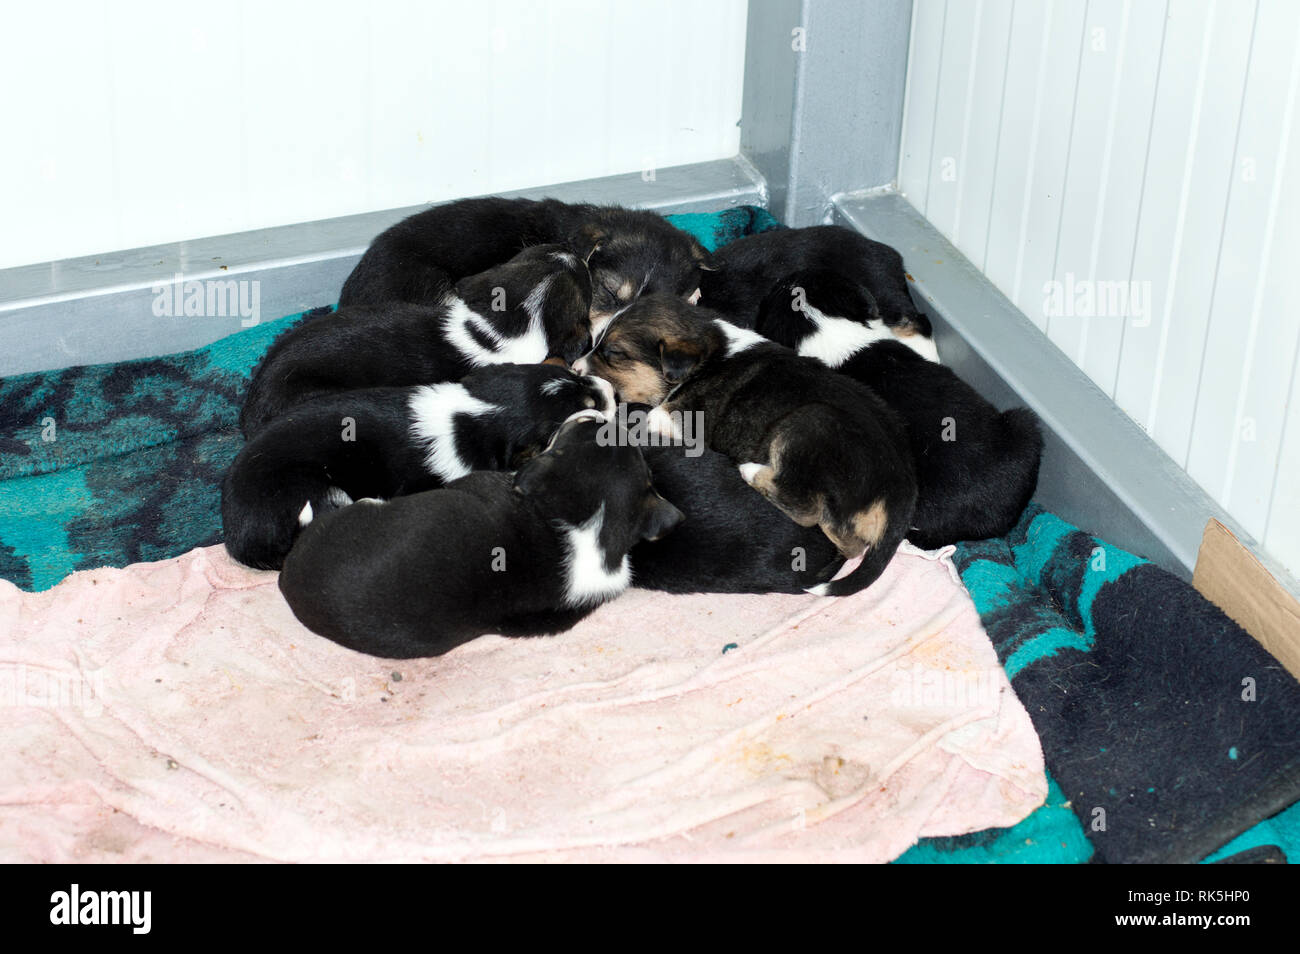 lots of black puppies sleeping in the shelter, charity and mercy theme, animal shelter, dog rescue, volunteer work - Stock Image